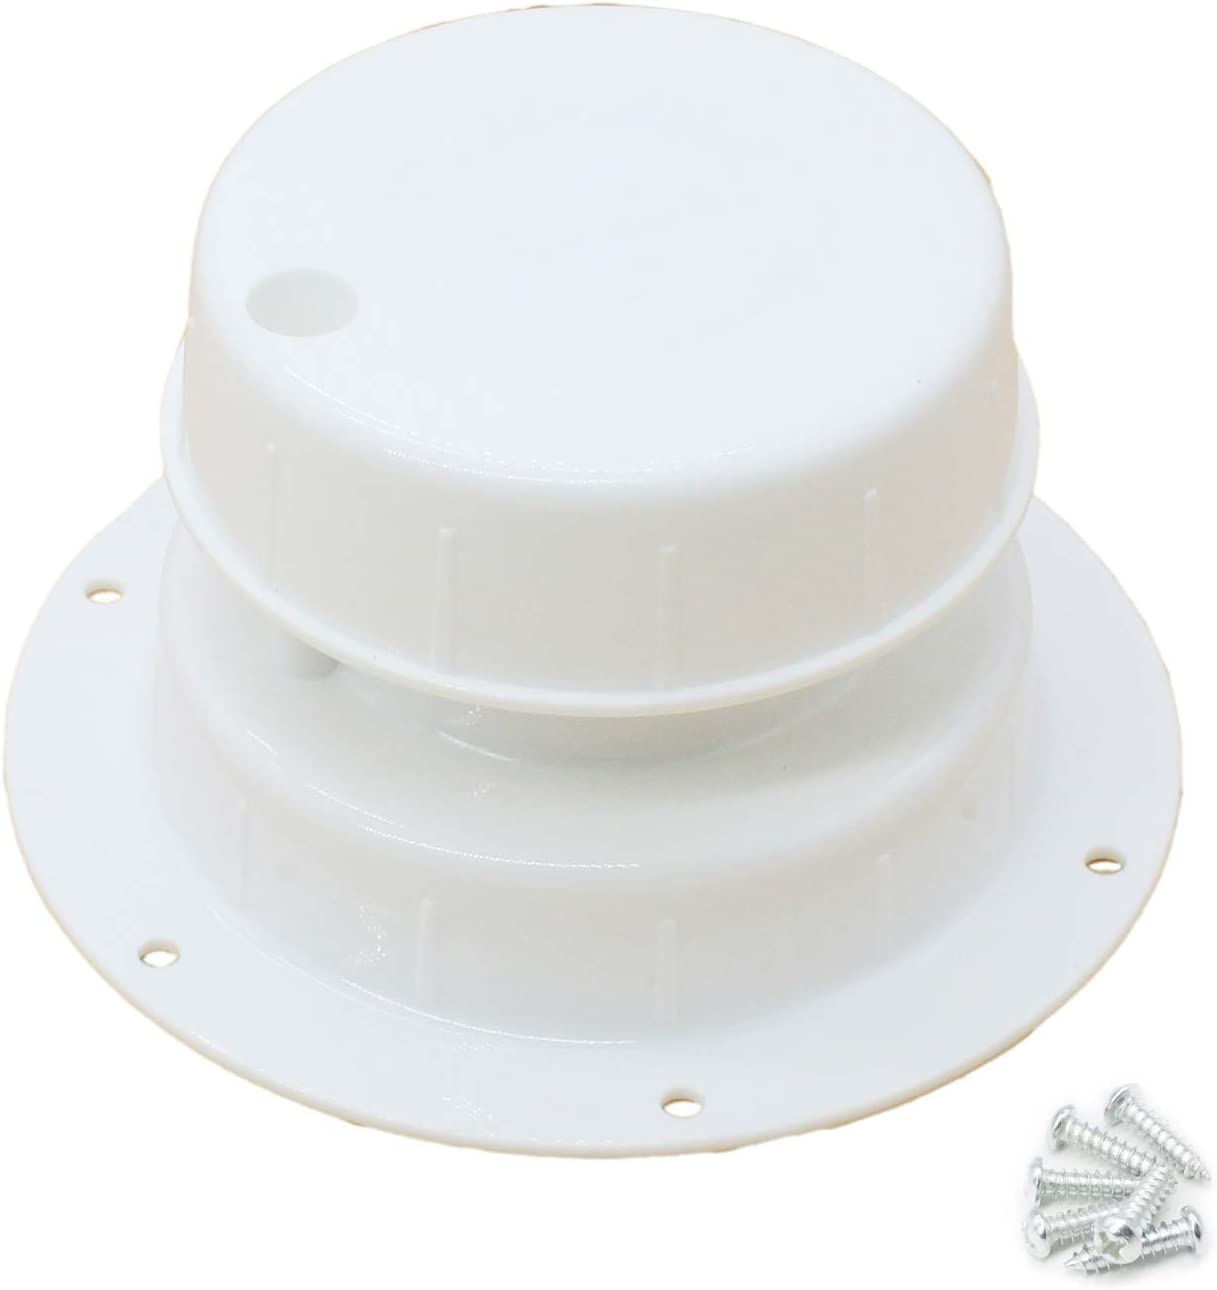 X-Haibei RV Plumbing Vent Cap White Roof Sewer Plastic Limited Superlatite time for free shipping